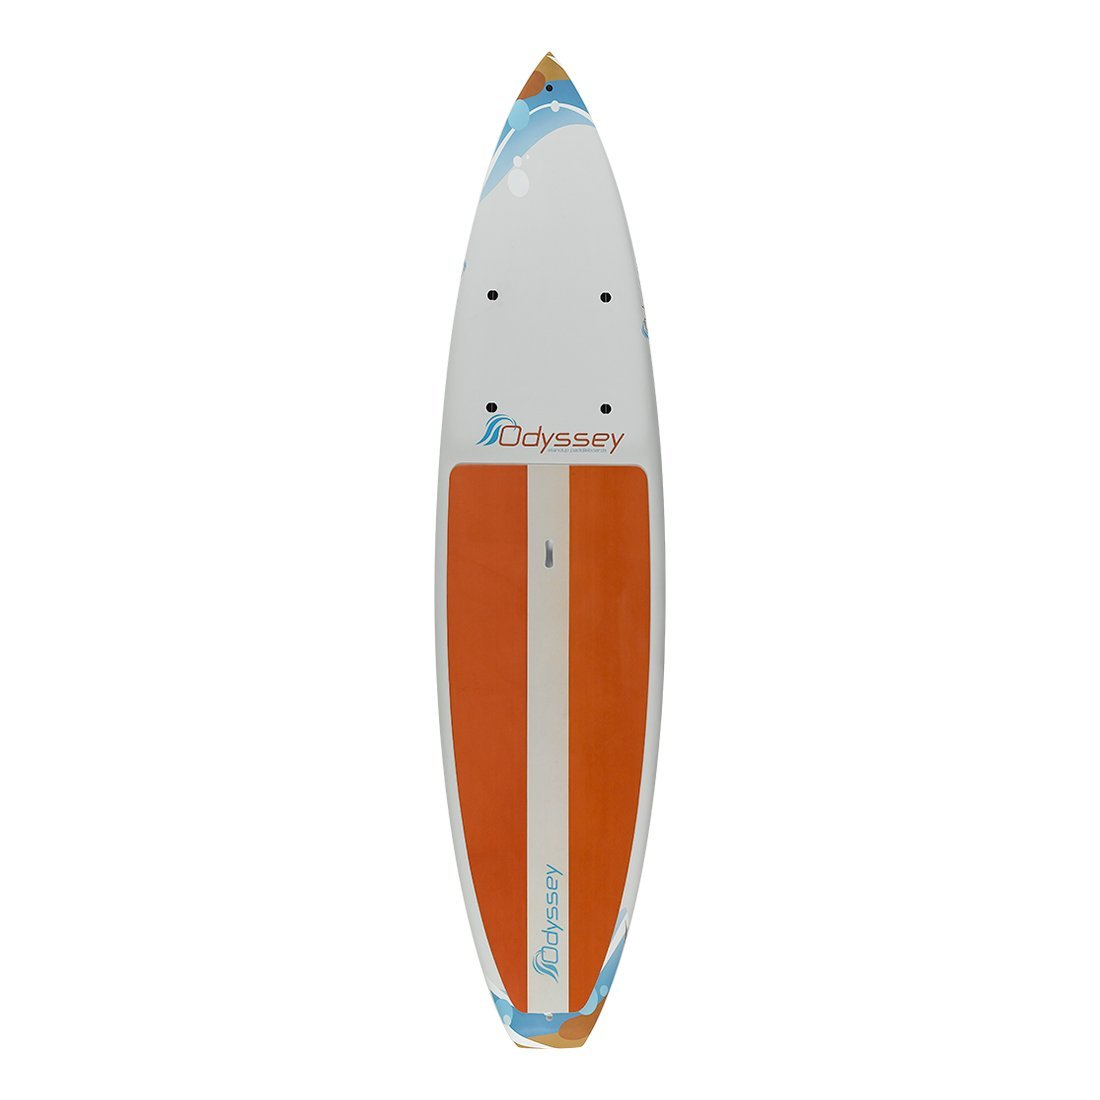 Odyssey SUP Tour Package - Orange Standup Paddle Board Paddle Boards 4theoutdoors America US USA SUP outdoors